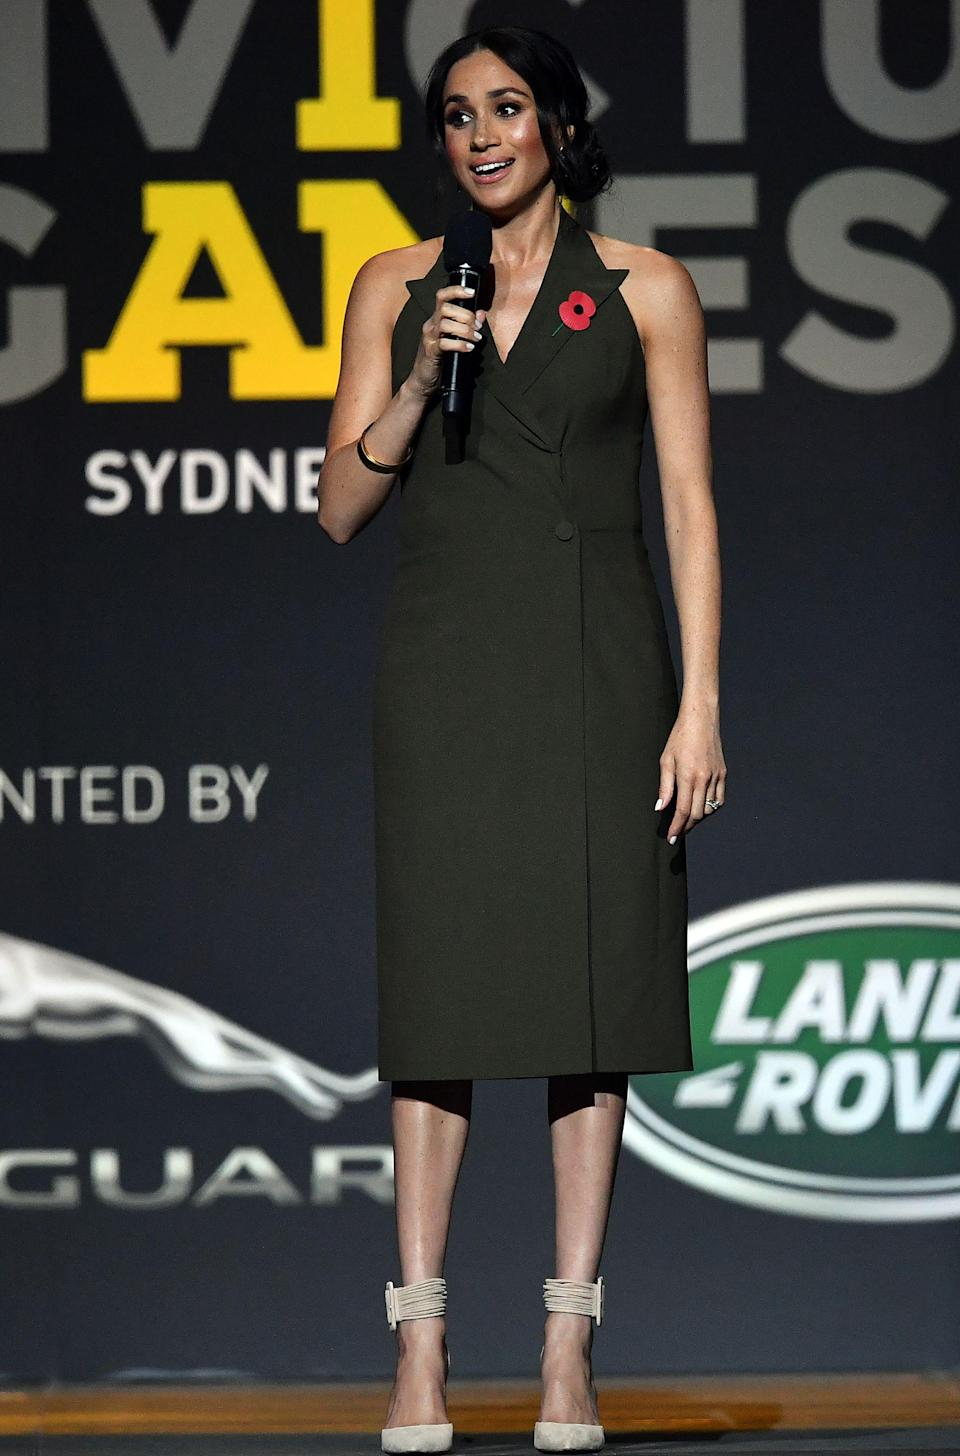 <p>The Duchess gave a speech at the Invictus Games closing ceremony in Australia, wearing a £2,683 khaki halterneck dress by Antonio Berardi and nude Aquazurra heels [Photo: Getty] </p>